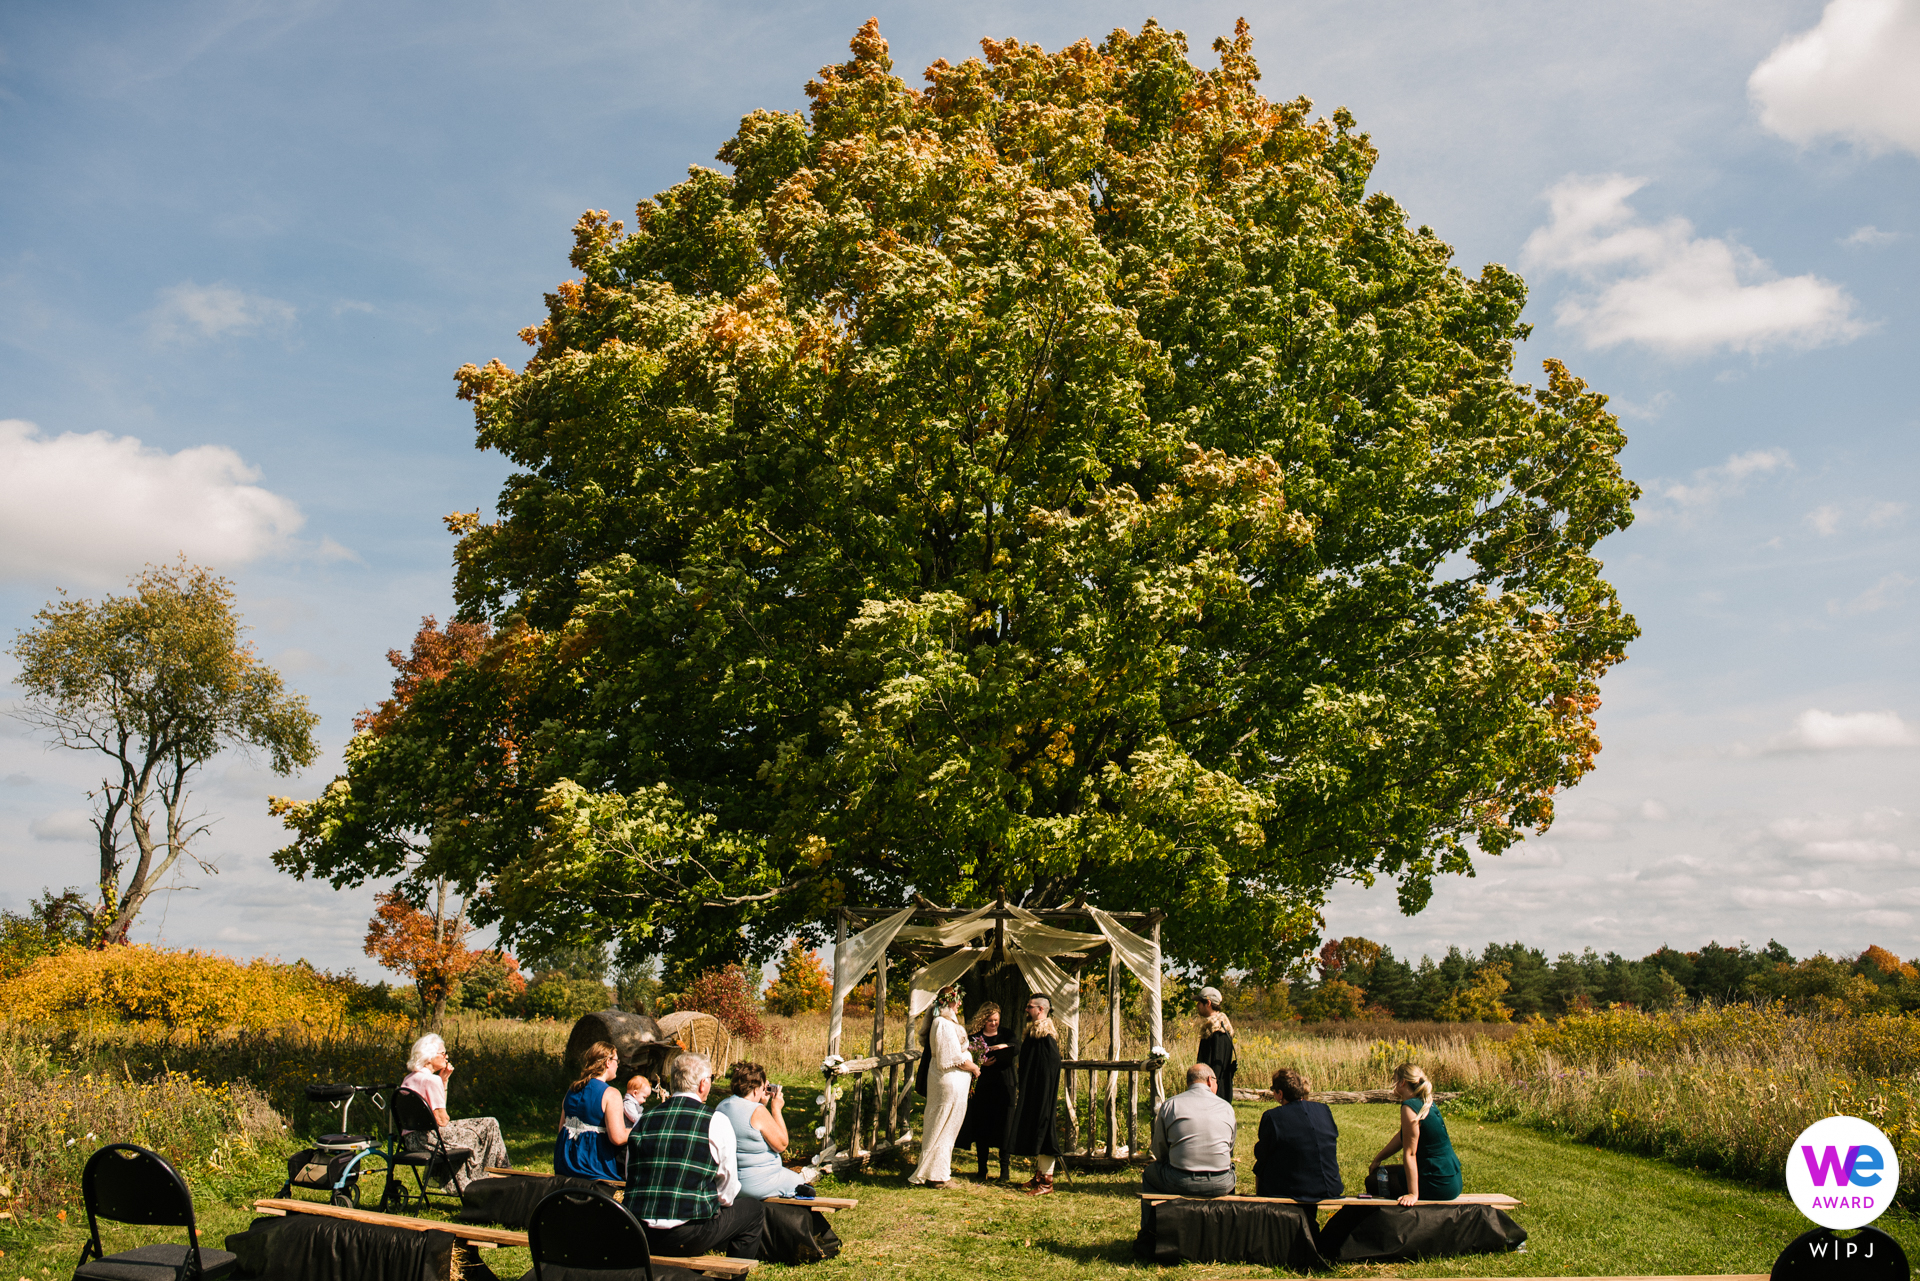 The Bee Spot Rural Family Farm - Tamworth, Ontario Wedding Image | Hidden Meadows Outdoor-ceremonie